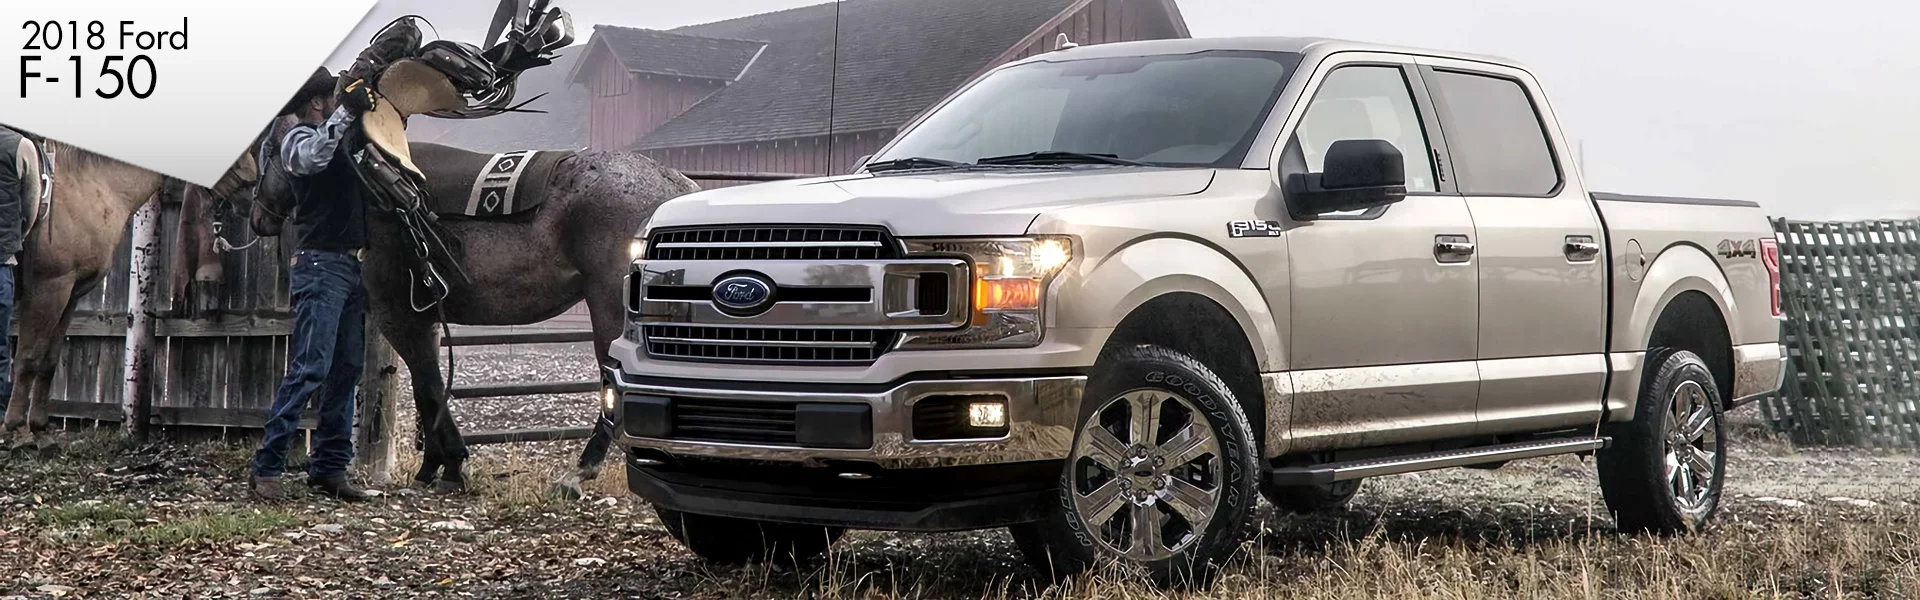 2018 Ford F-150 Banner